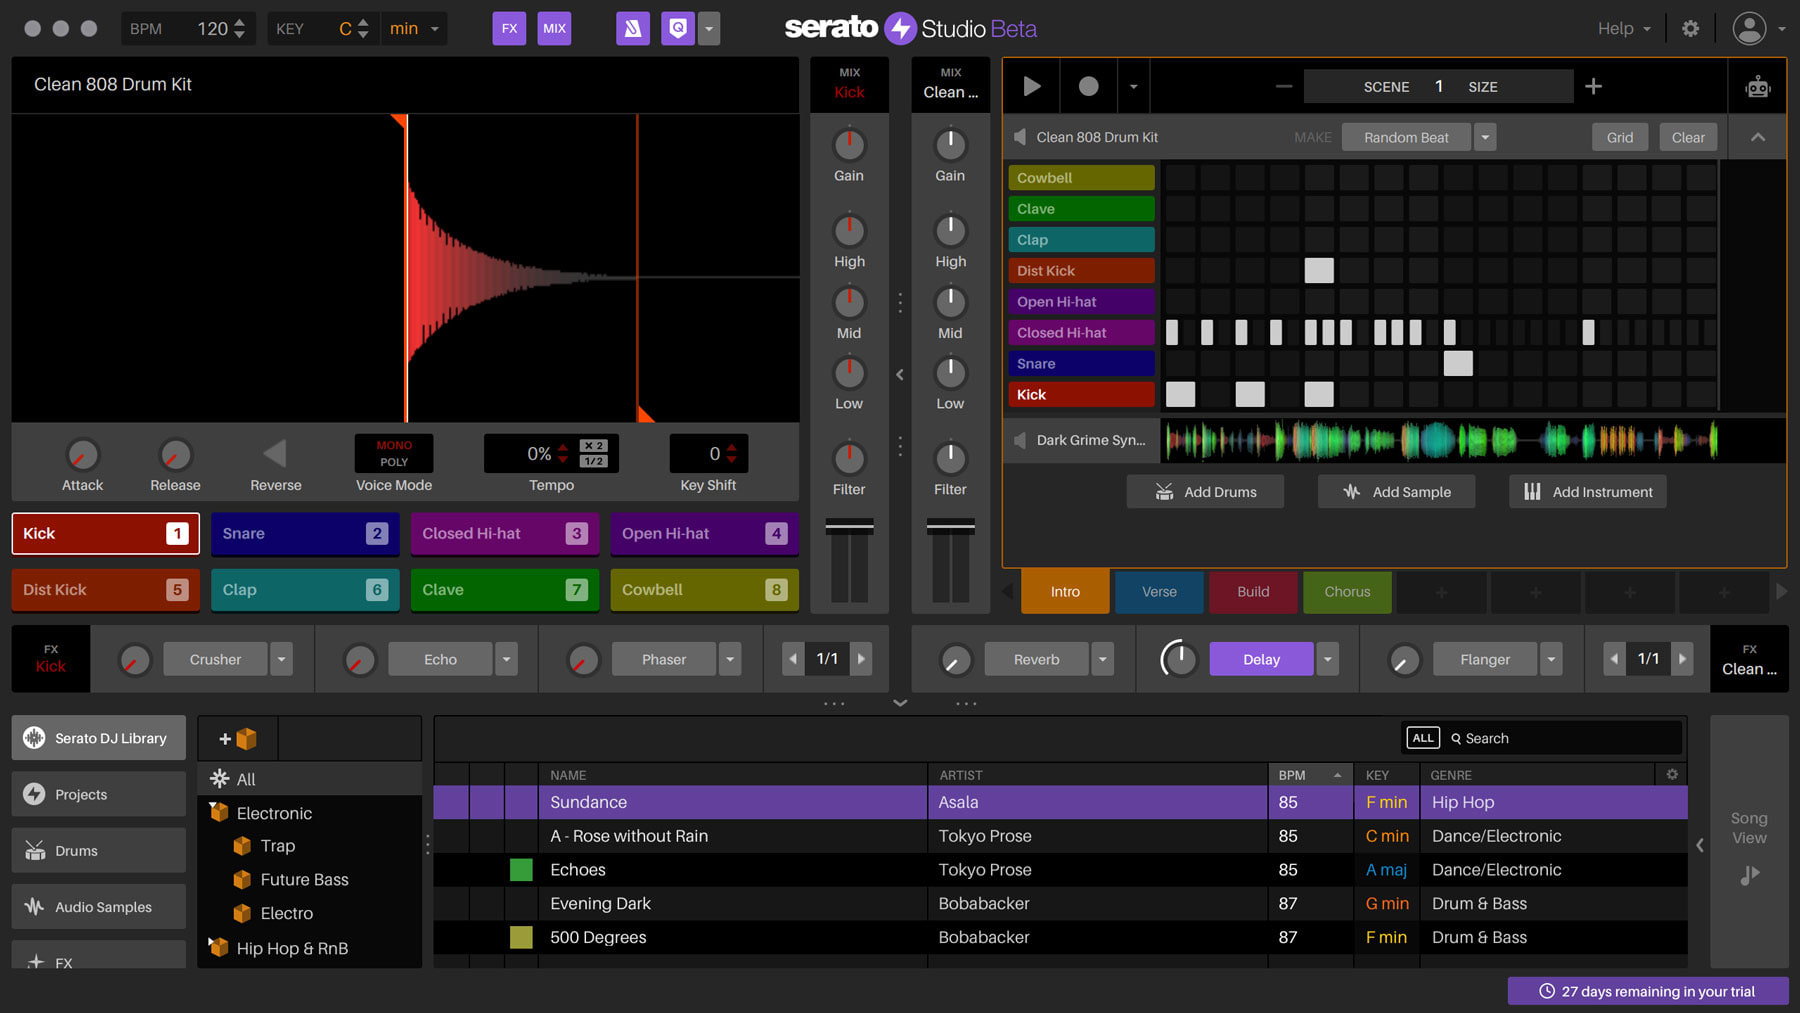 Serato Studio helps simplify the path to music production